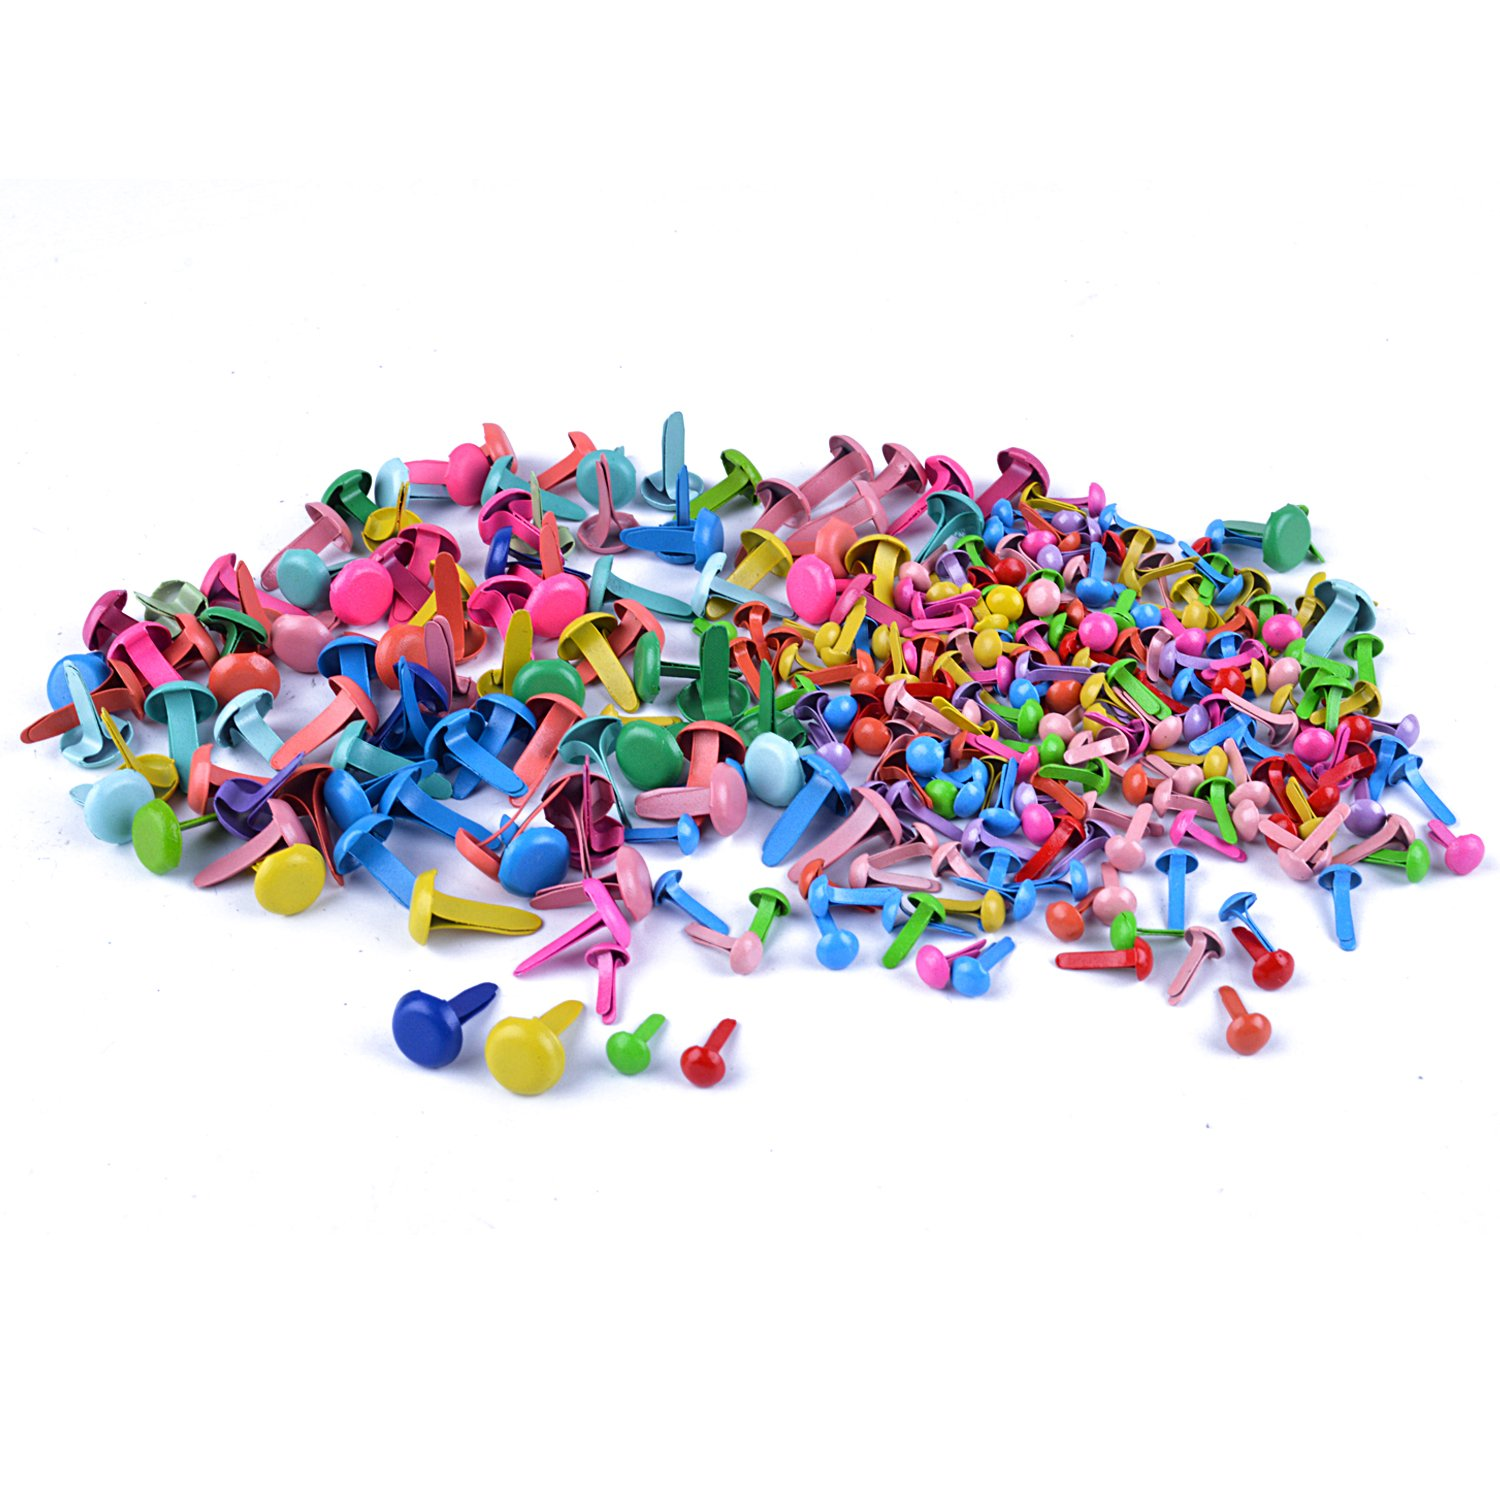 euhuton 300 Pieces Mini Brads 5mm,8mm Round Scrapbooking Craft Iron Brads Multicolor Paper Fastener Color Random